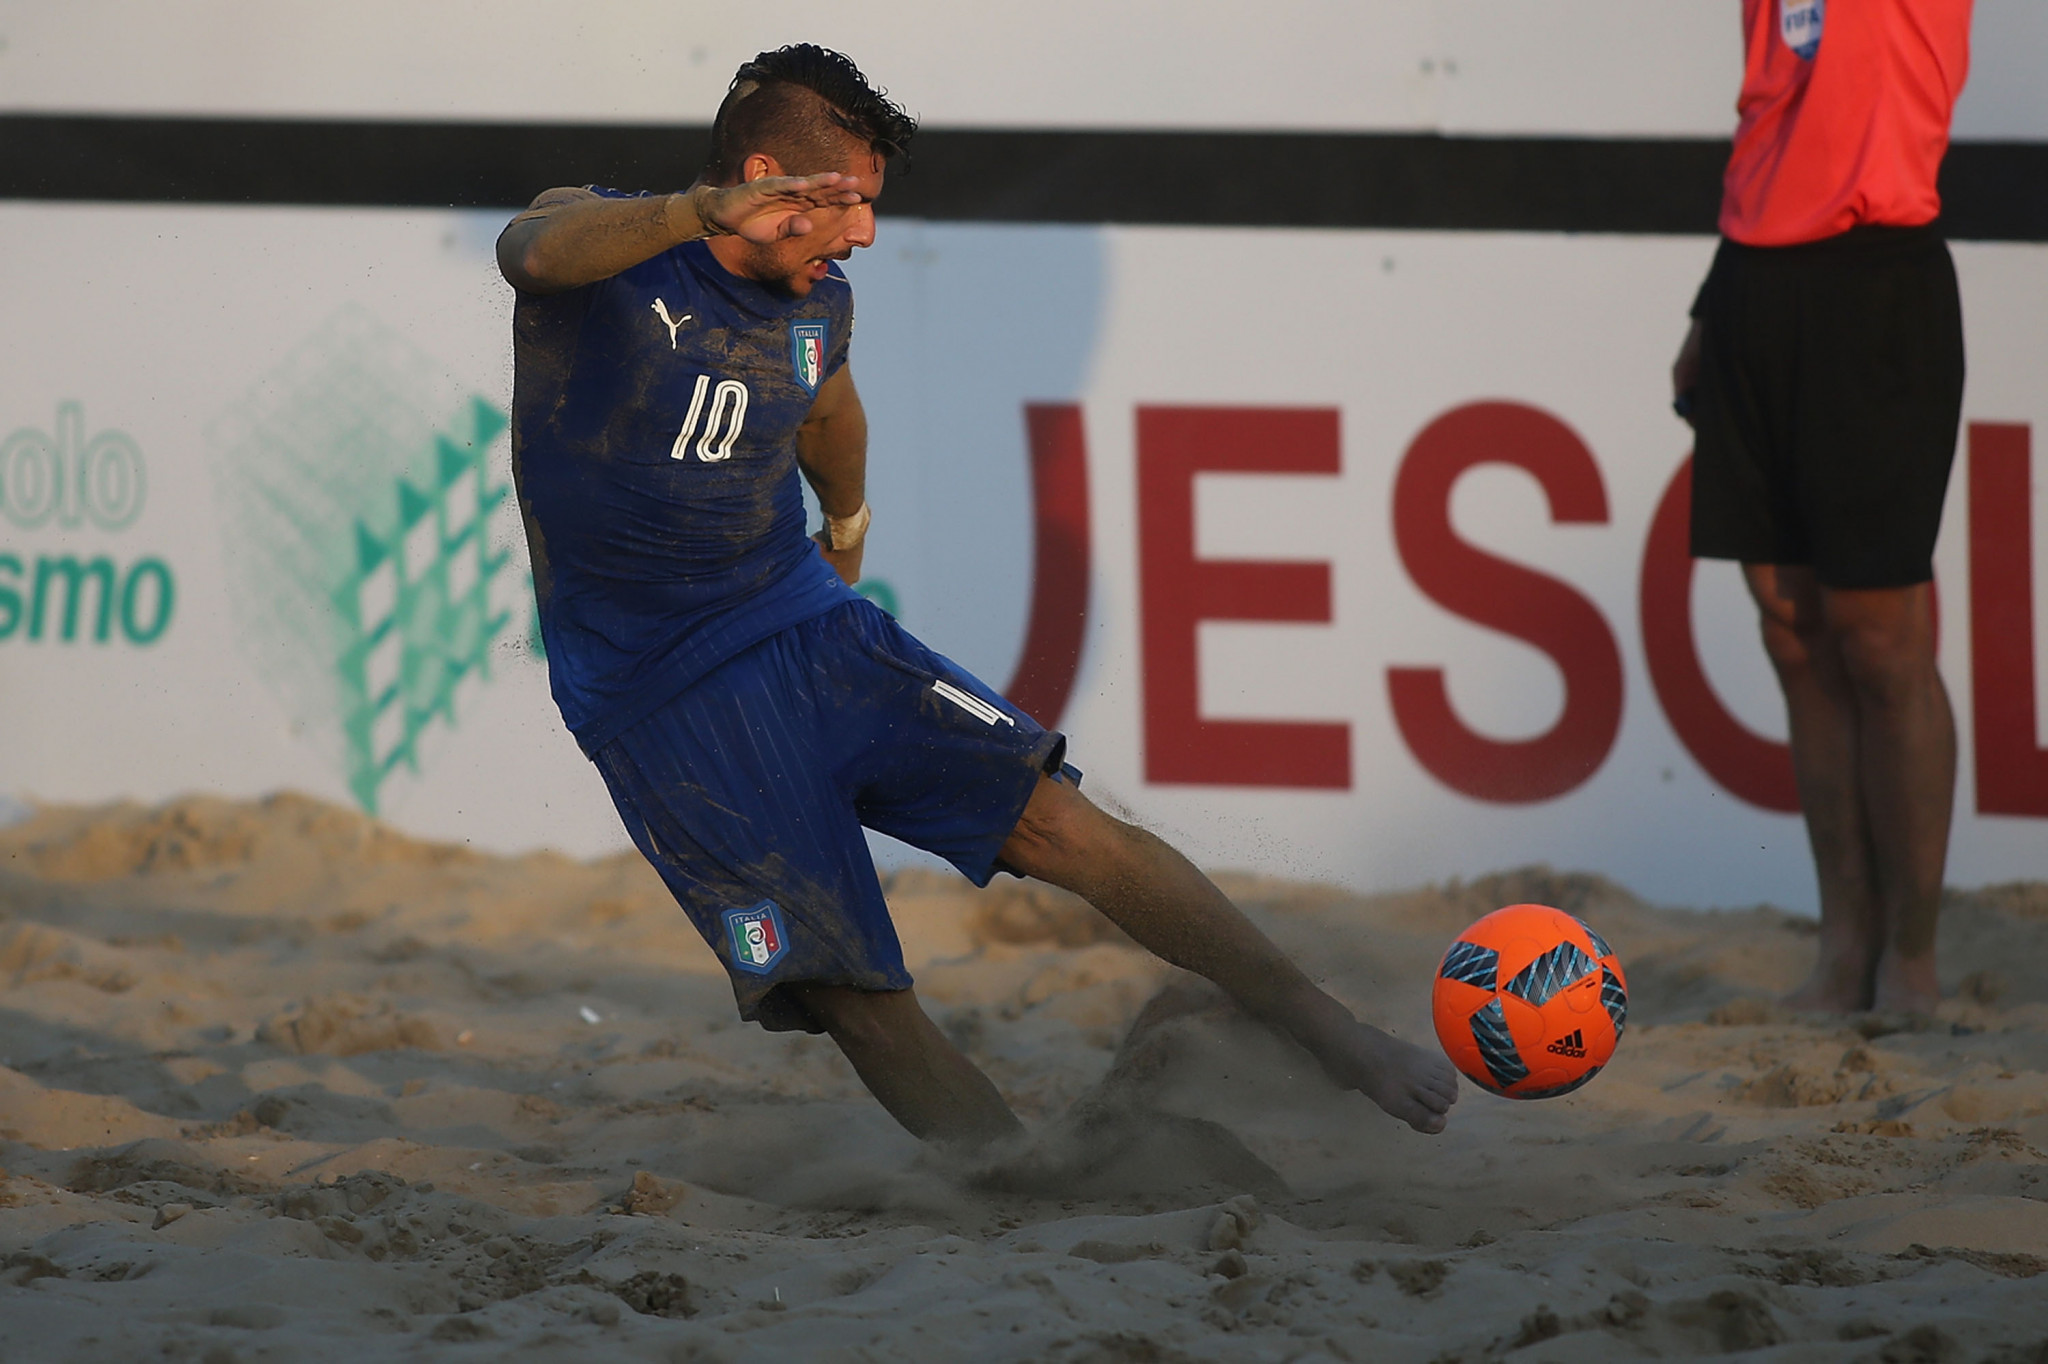 Italy and Portugal to clash in FIFA Beach Soccer World Cup final